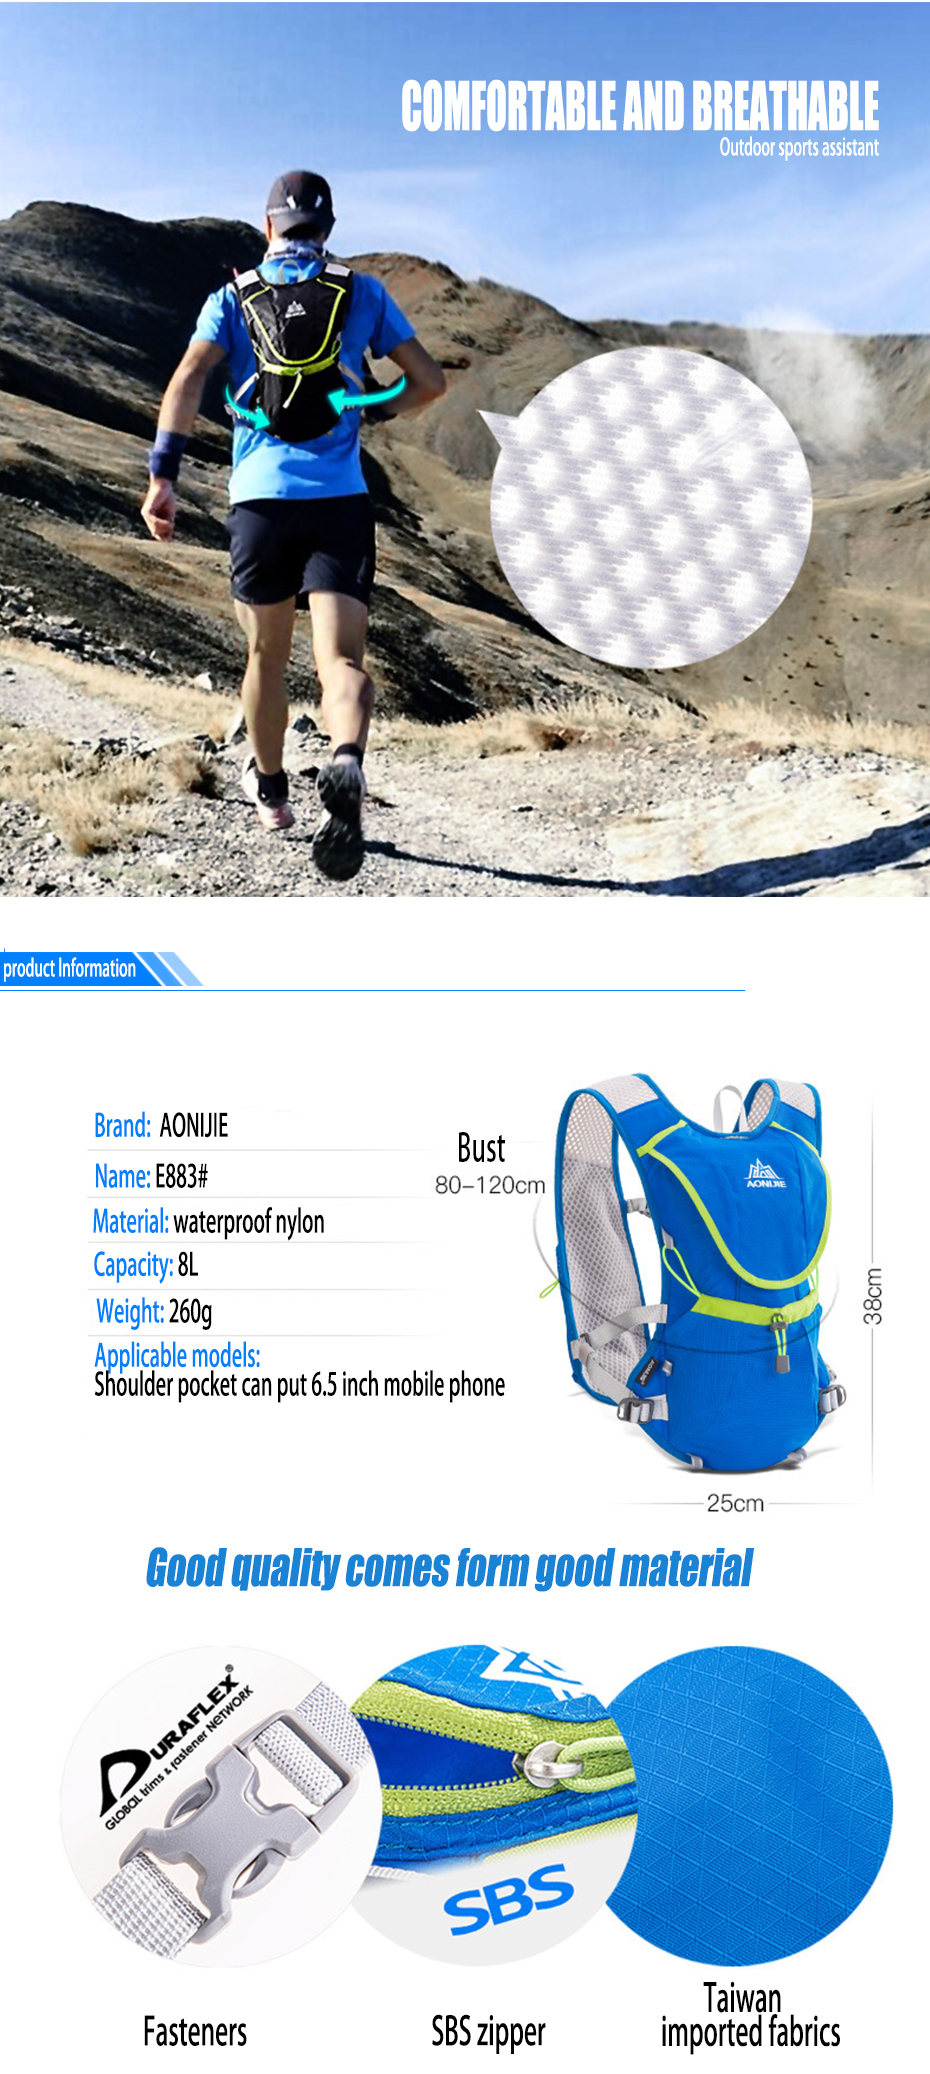 2018 Aonijie Outdoor Trail Running Marathon Hydration Backpack C930 15l Blue Getsubject Aeproductgetsubject